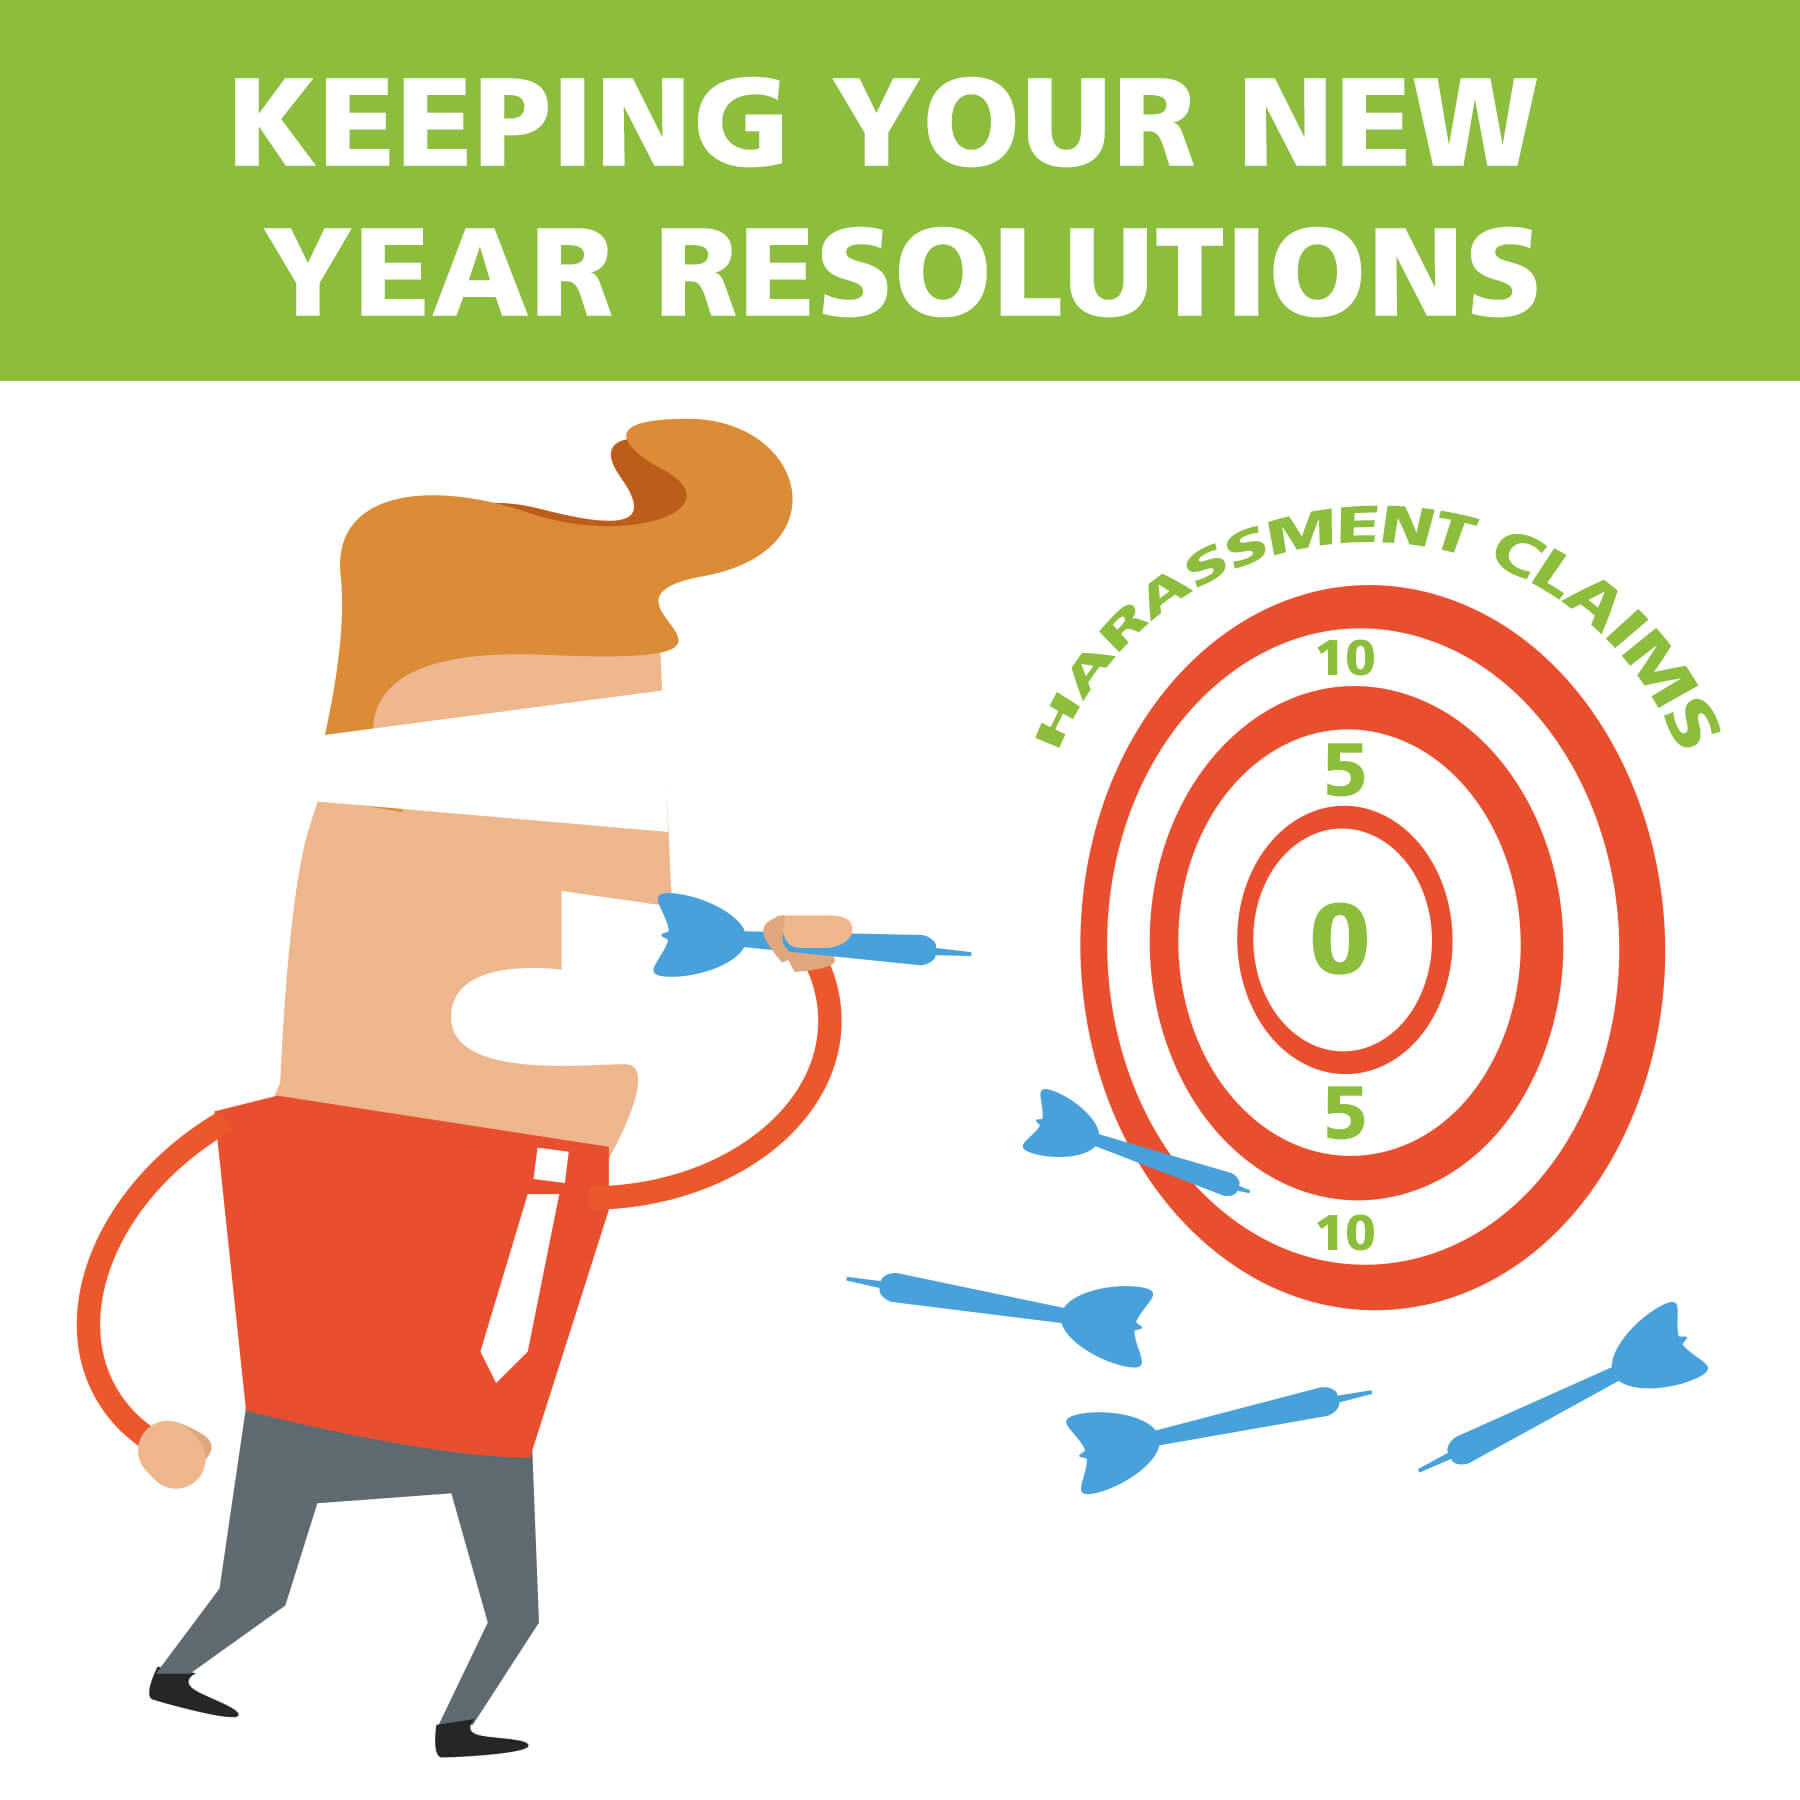 keeping your new year resolutions harassment man blind-folded throwing darts